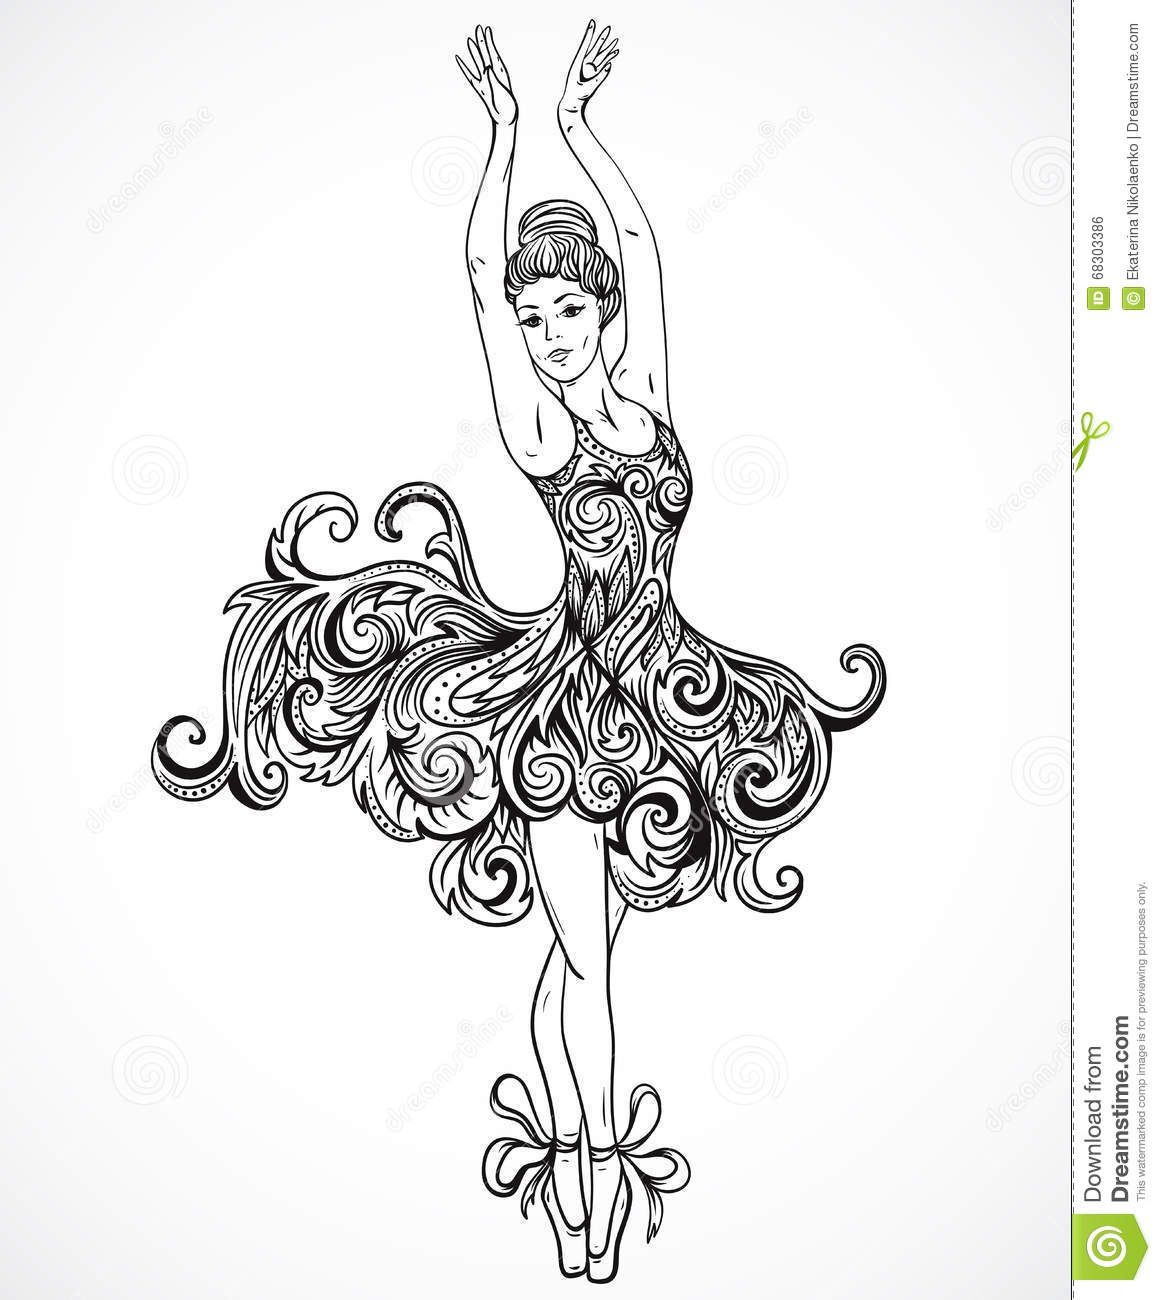 Download Ballerina With Floral Ornament Dress. Vintage Black And White Hand Drawn Vector Stock Vector - Illustration of ballerina, elegance: 68303386